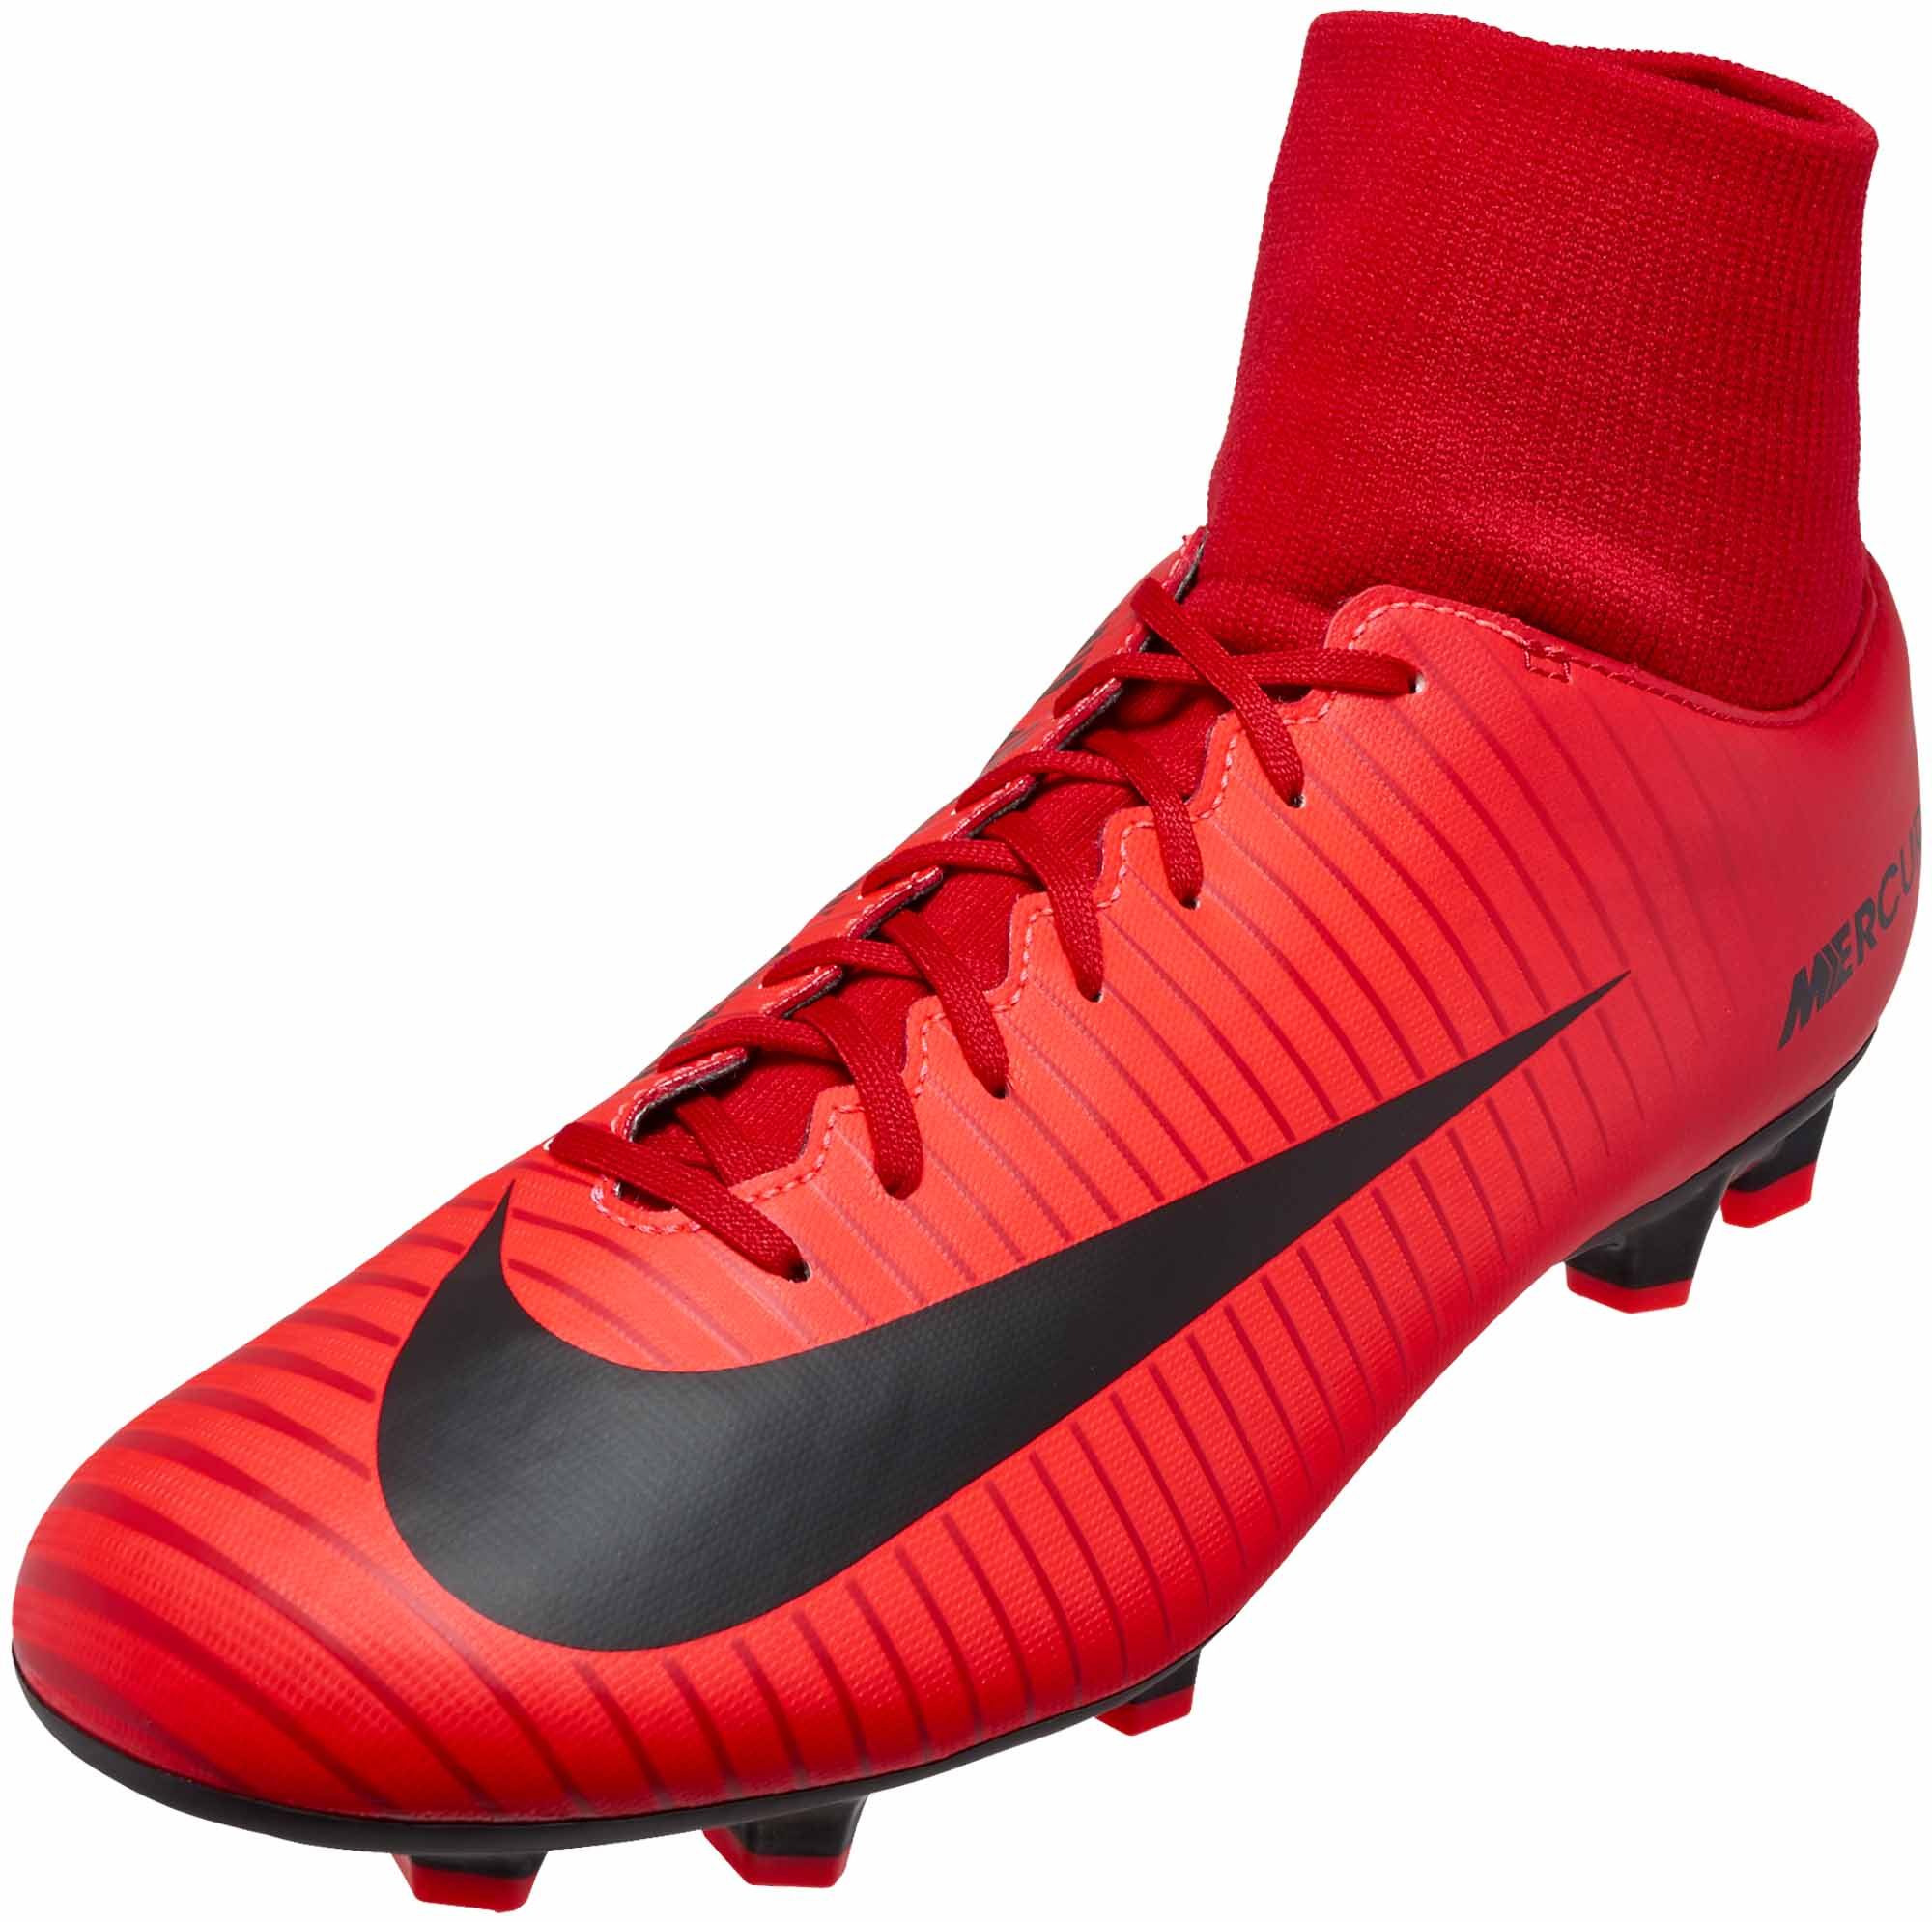 free shipping ea20f 94b61 Nike Mercurial Victory VI DF FG - University Red & Black ...